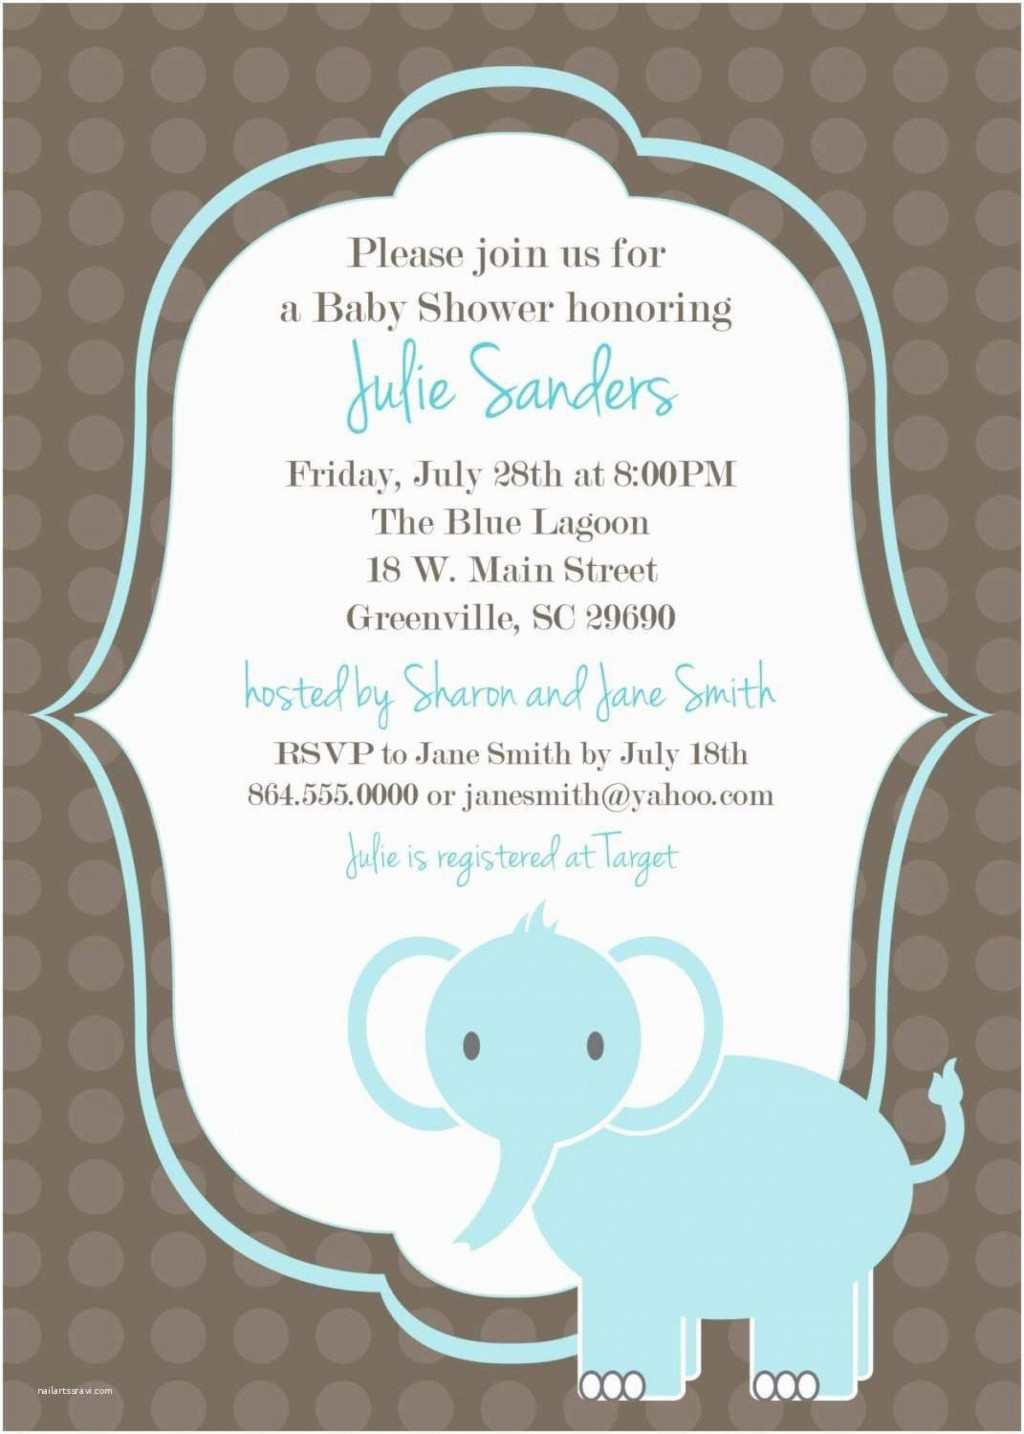 001 Wondrou Baby Shower Invite Template Word Concept  Invitation Wording Sample Free ExampleLarge